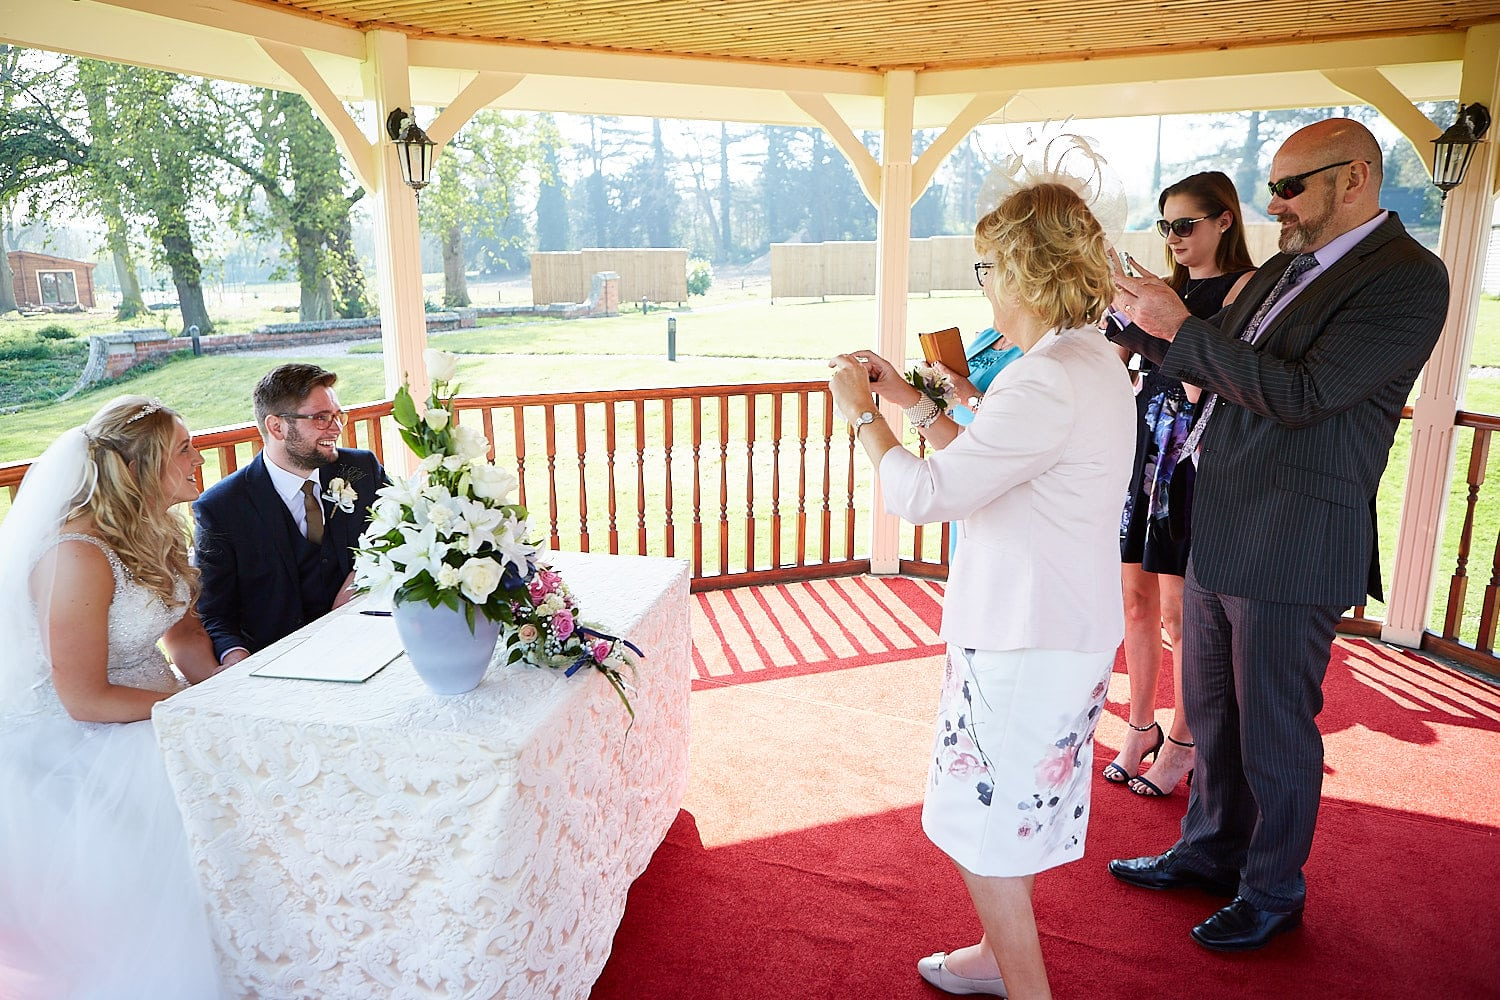 Family and friends taking photos of a couple with the wedding registers